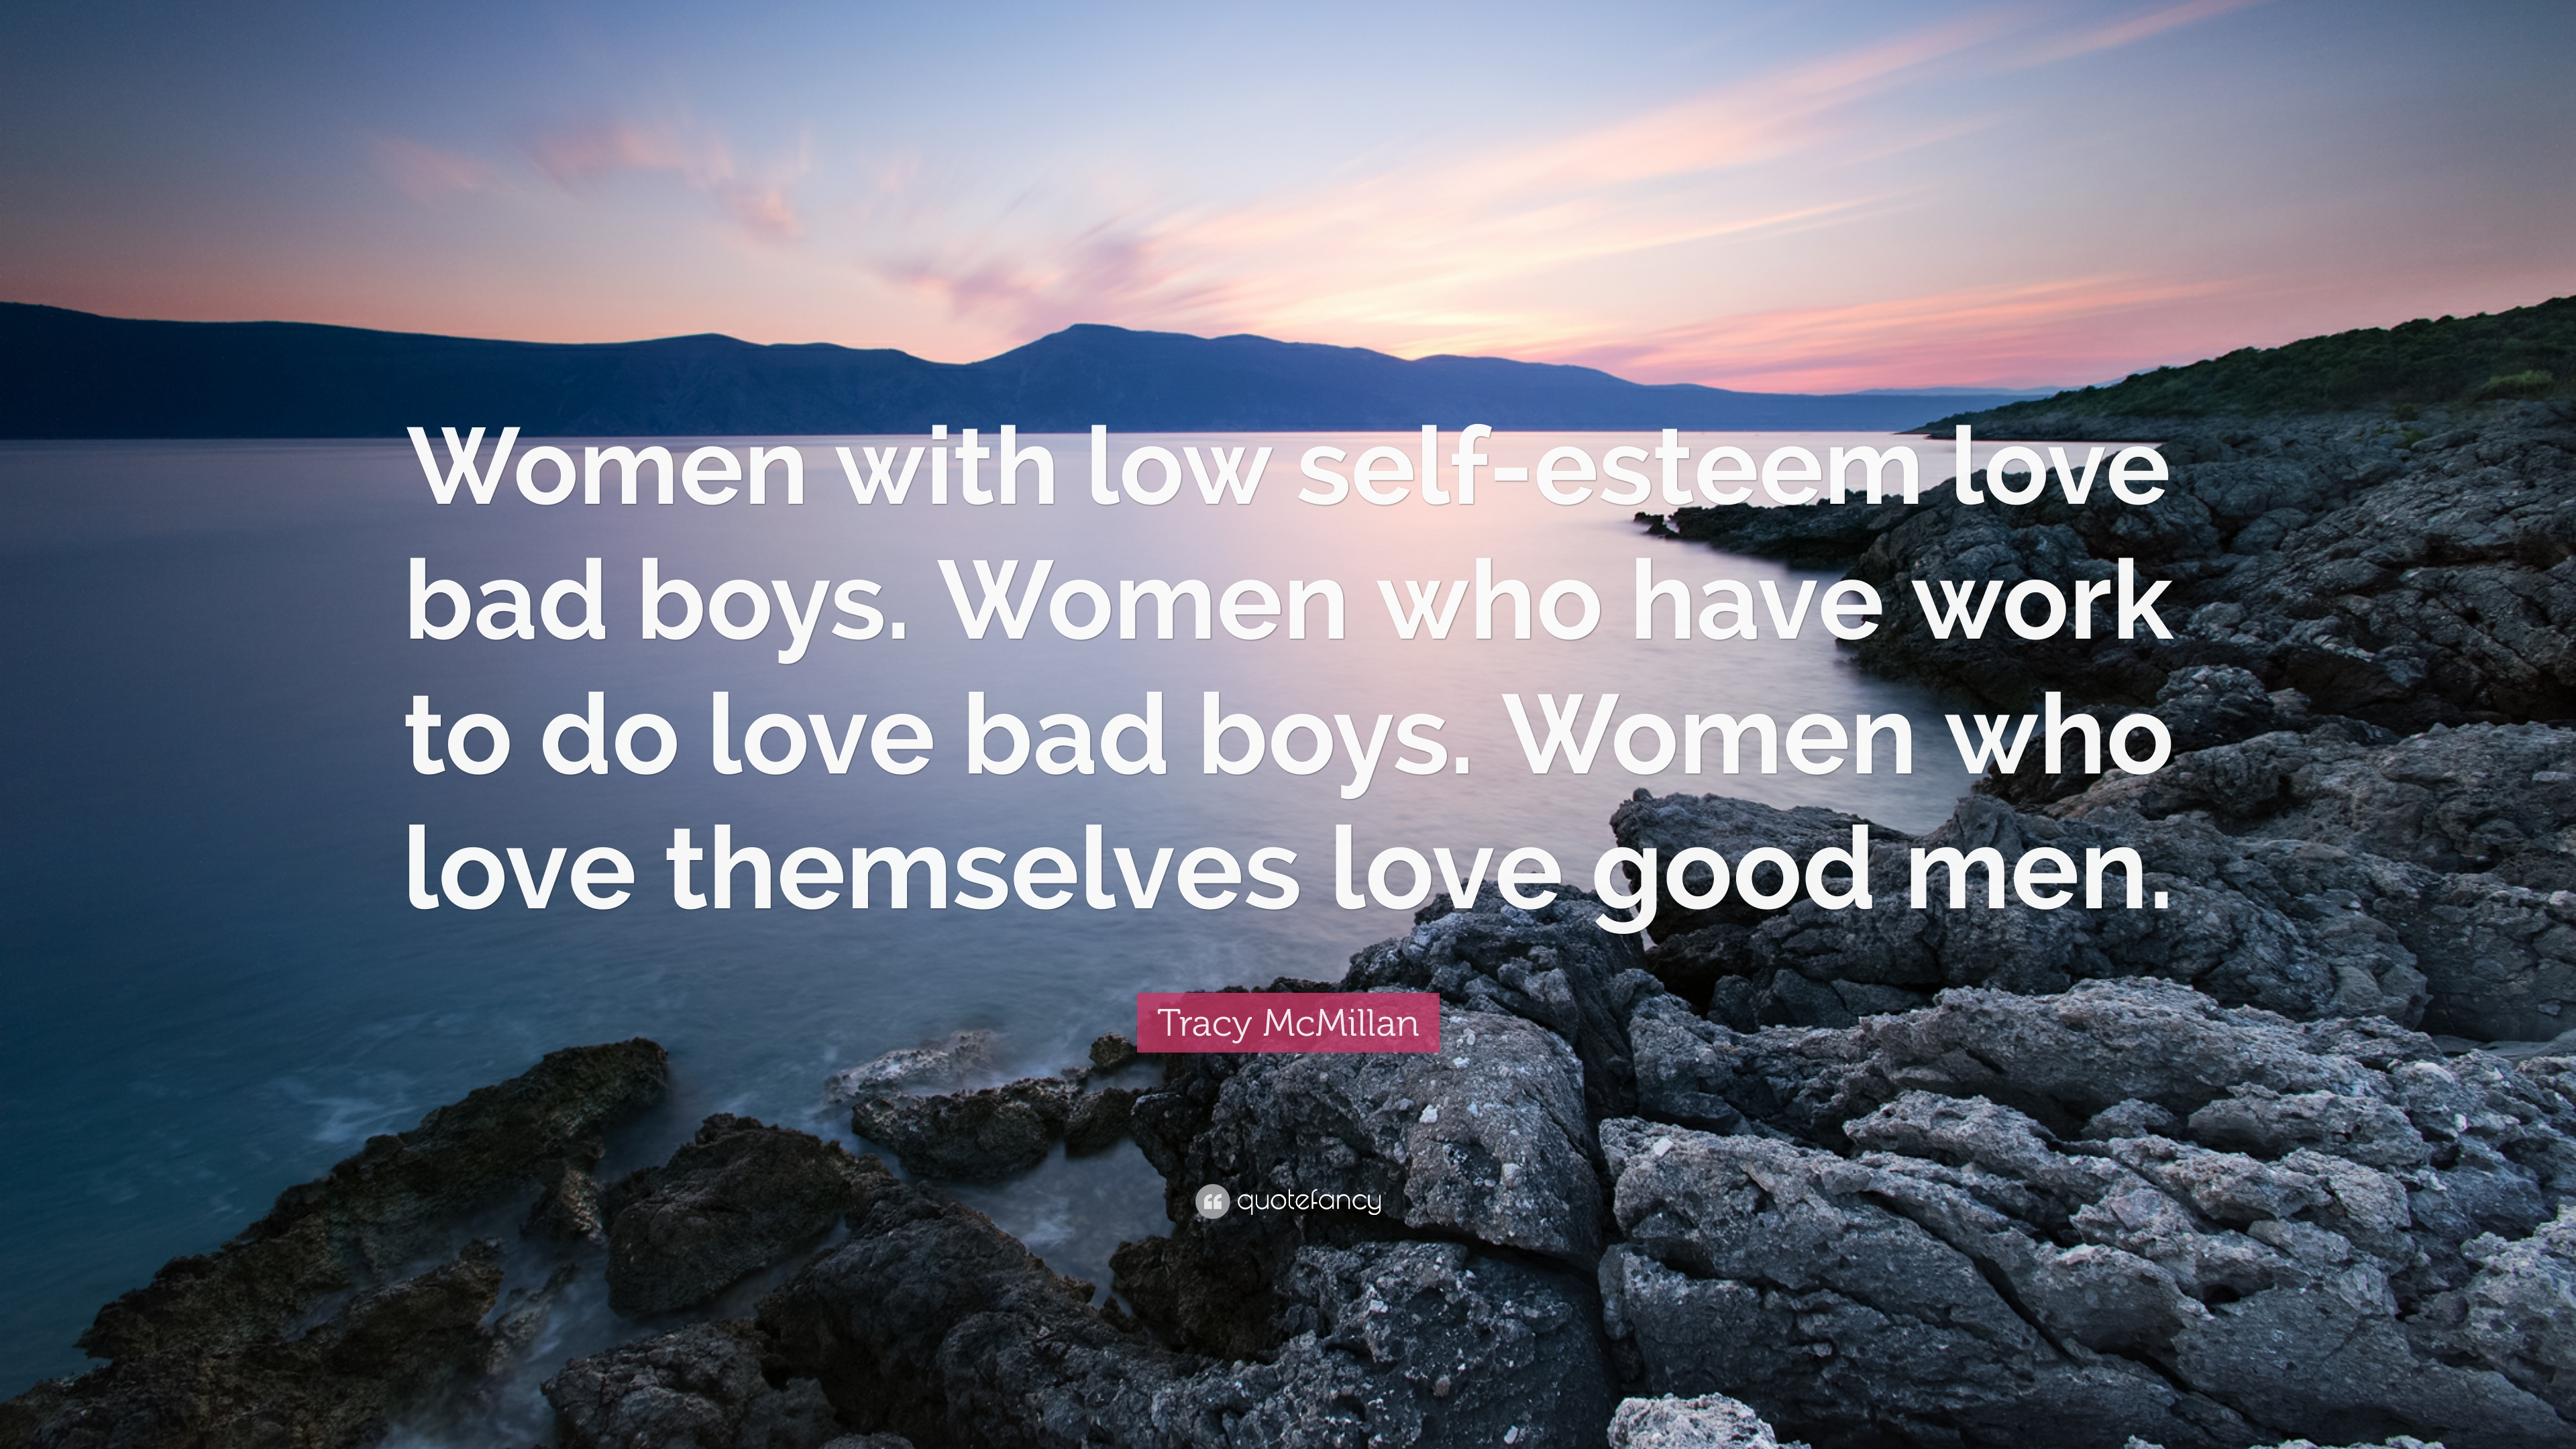 "Love Quotes For Women Tracy Mcmillan Quote ""Women With Low Selfesteem Love Bad Boys"